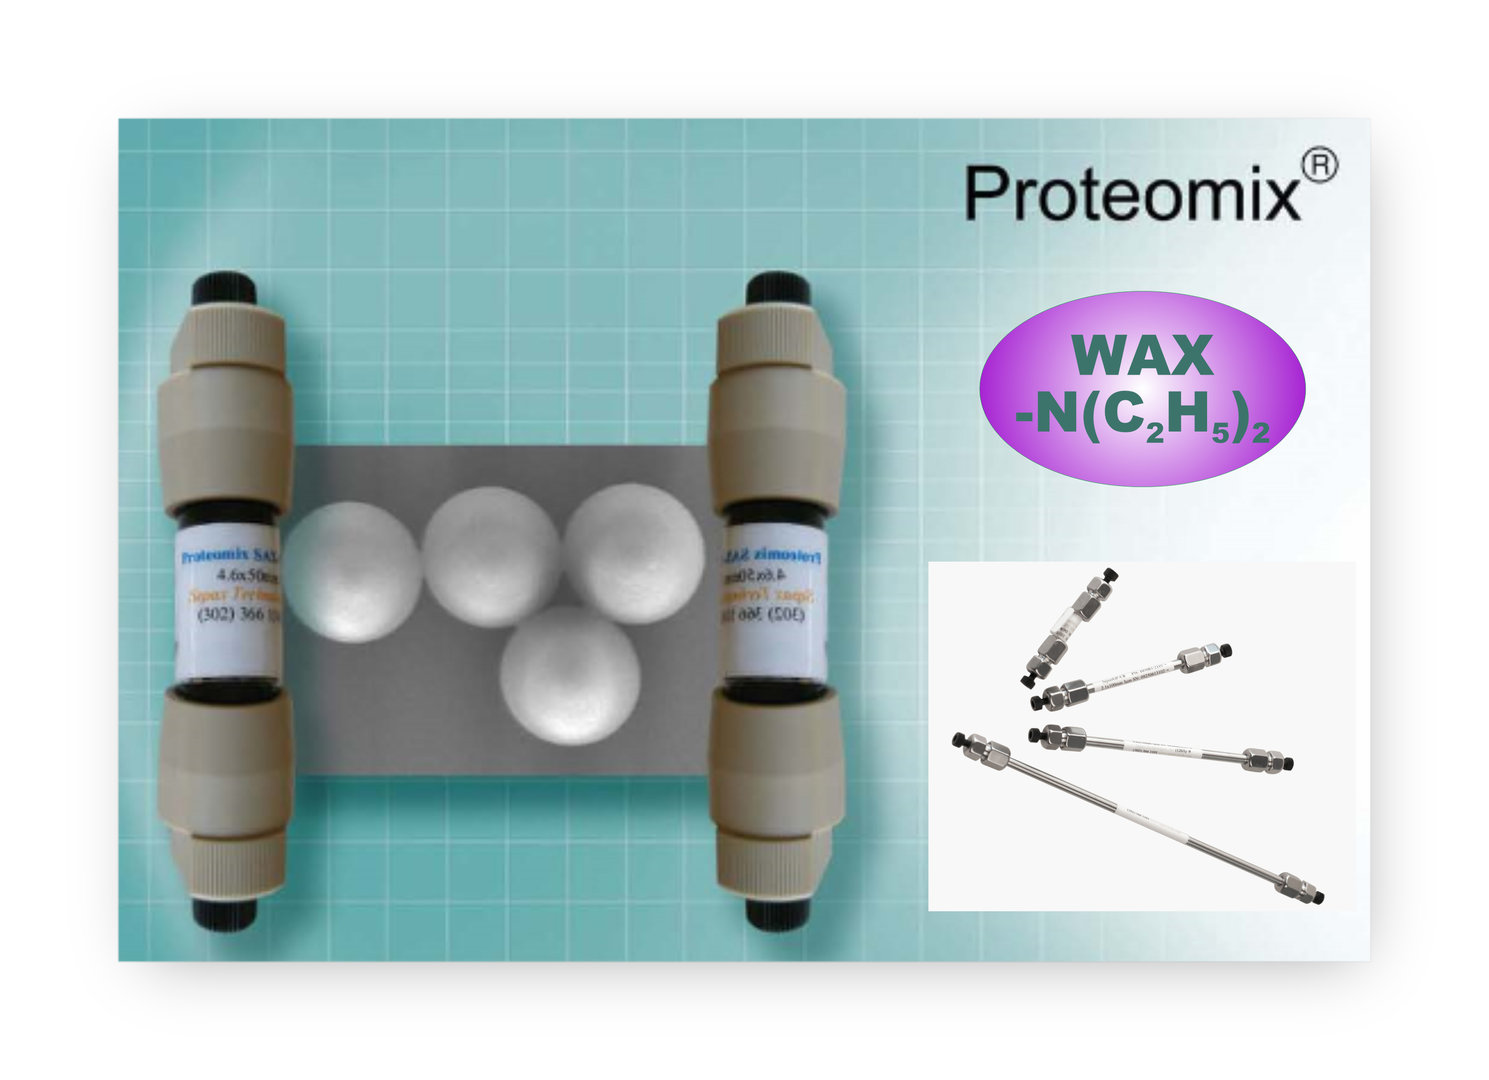 Sepax Proteomix WAX, NP3, Guard cartridge